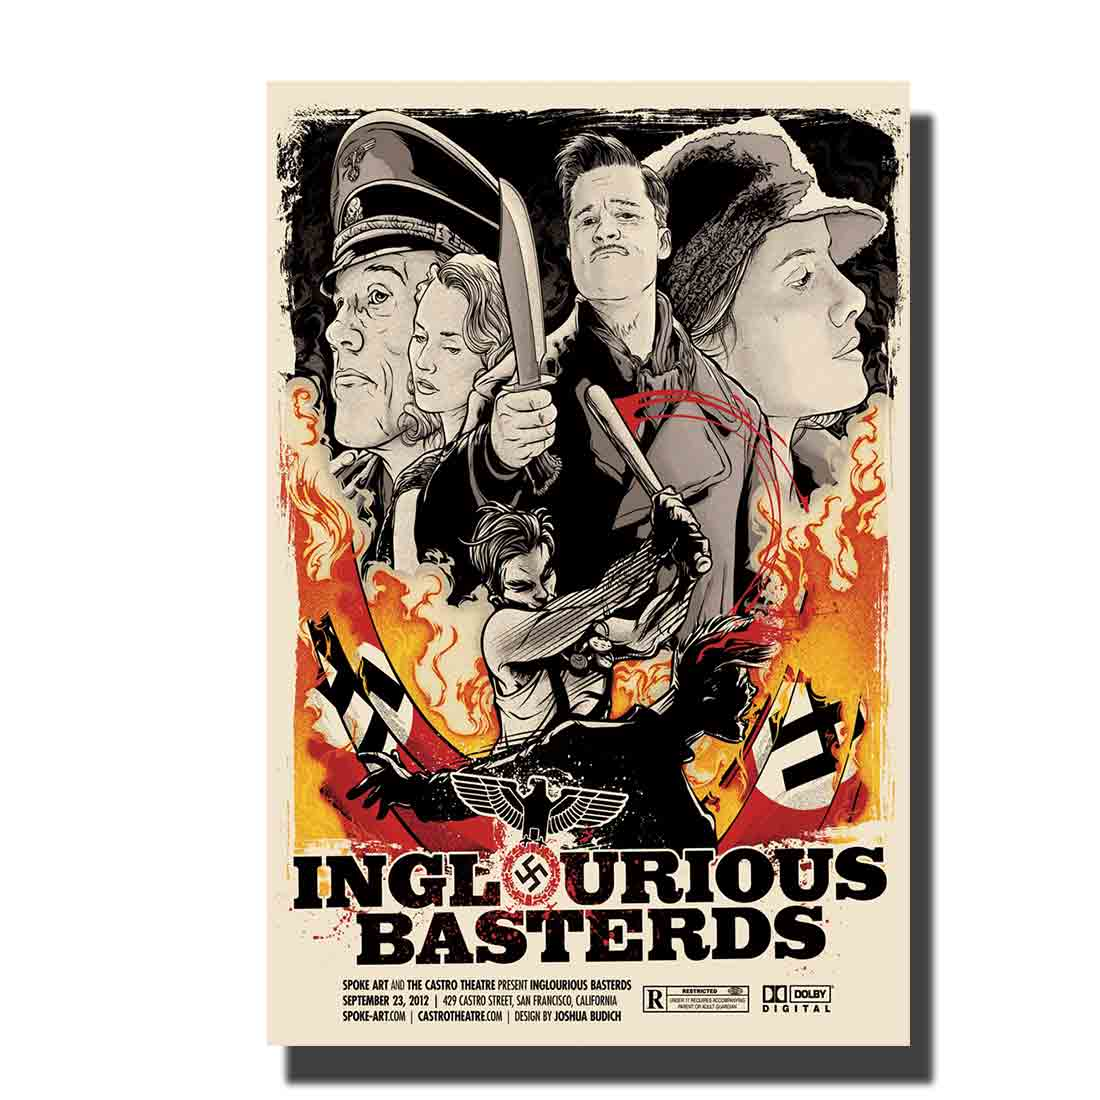 Art Poster Print Inglourious Basterds Quentin Tarantino Movie hot Home Wall decor8x12 12x18 24x36decor canvas image